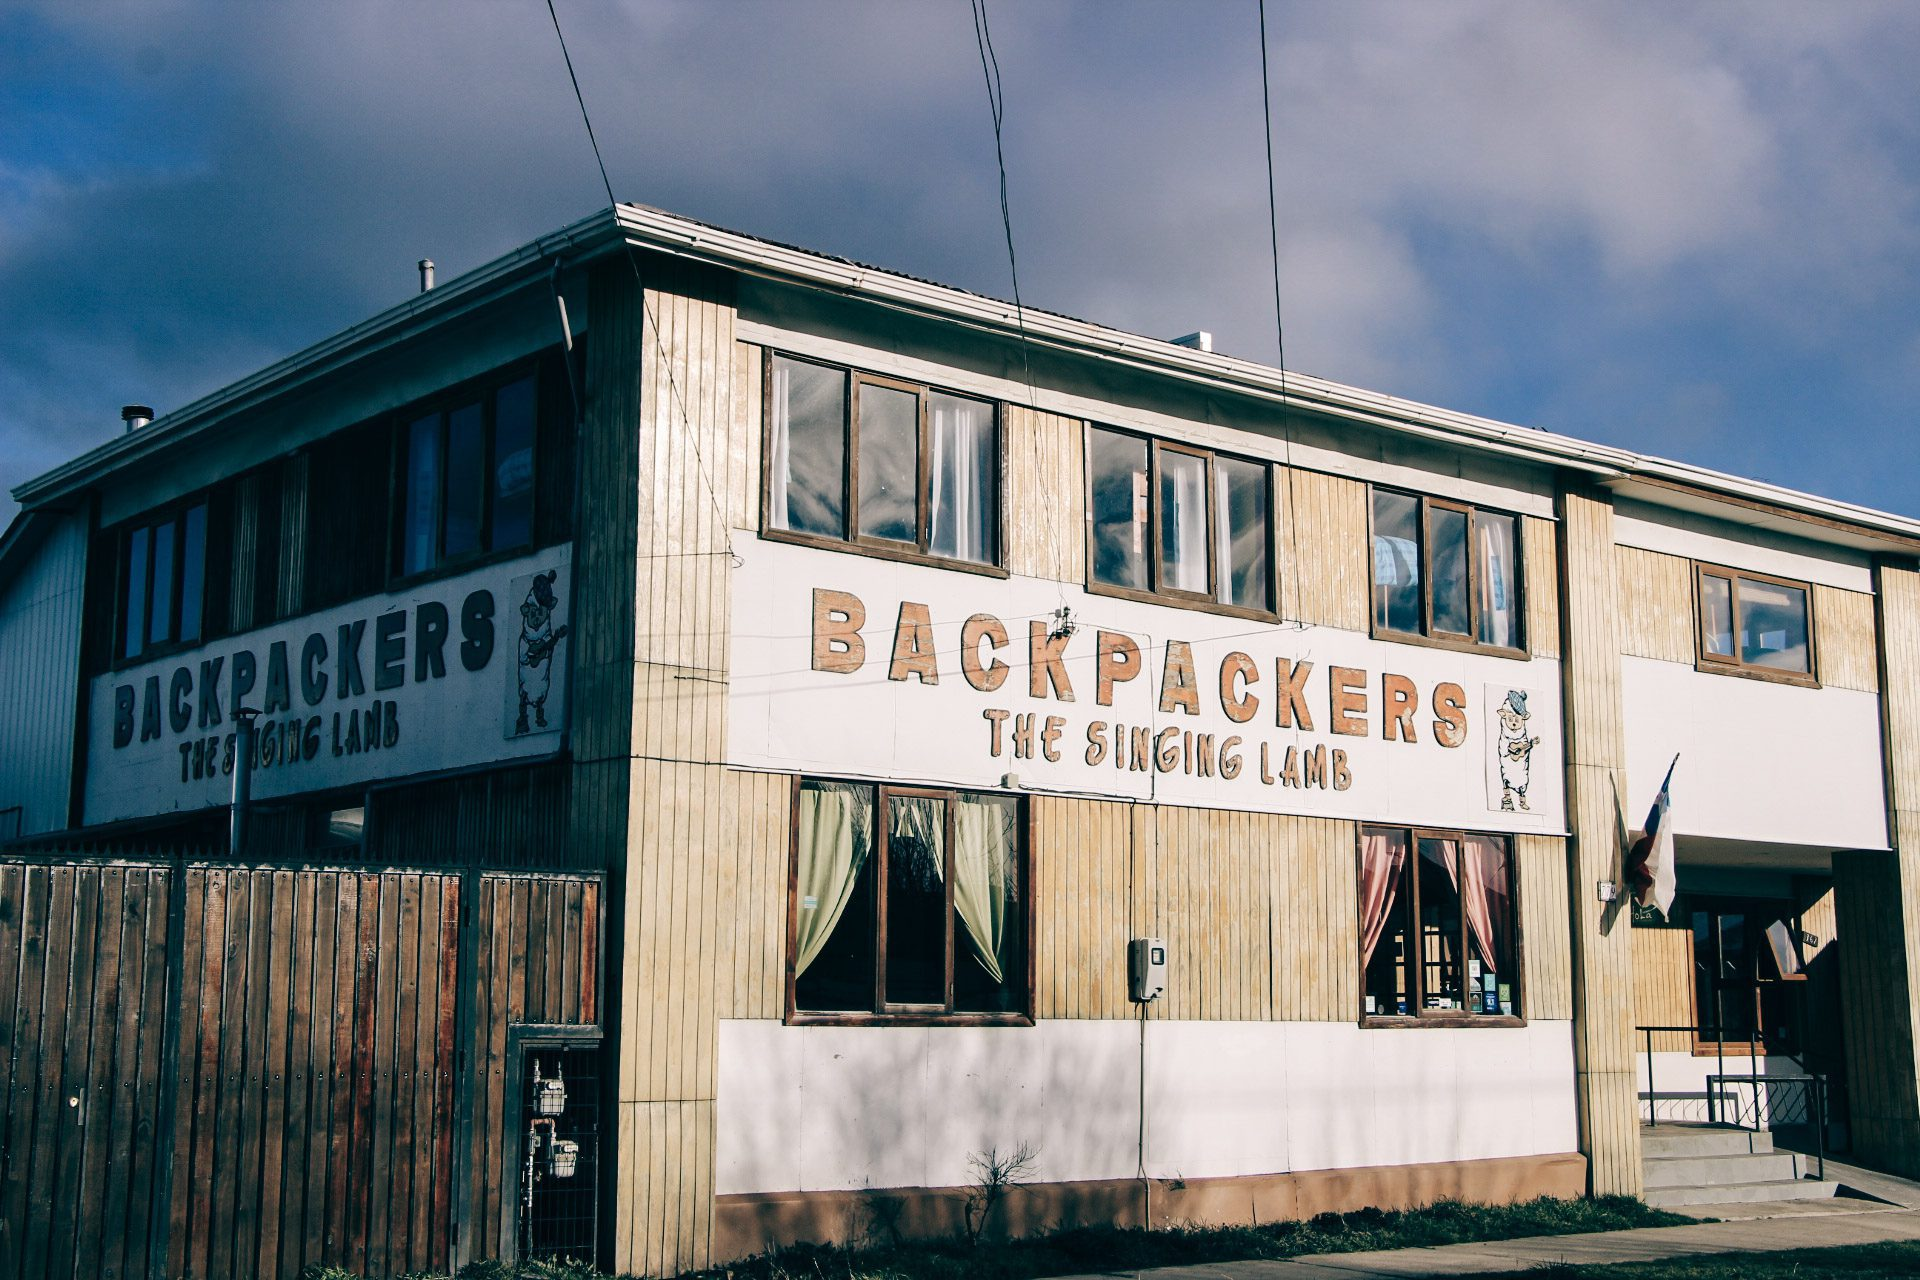 Fachada do hostel The Singing Lamb Backpackers, em Puerto Natales, Chile